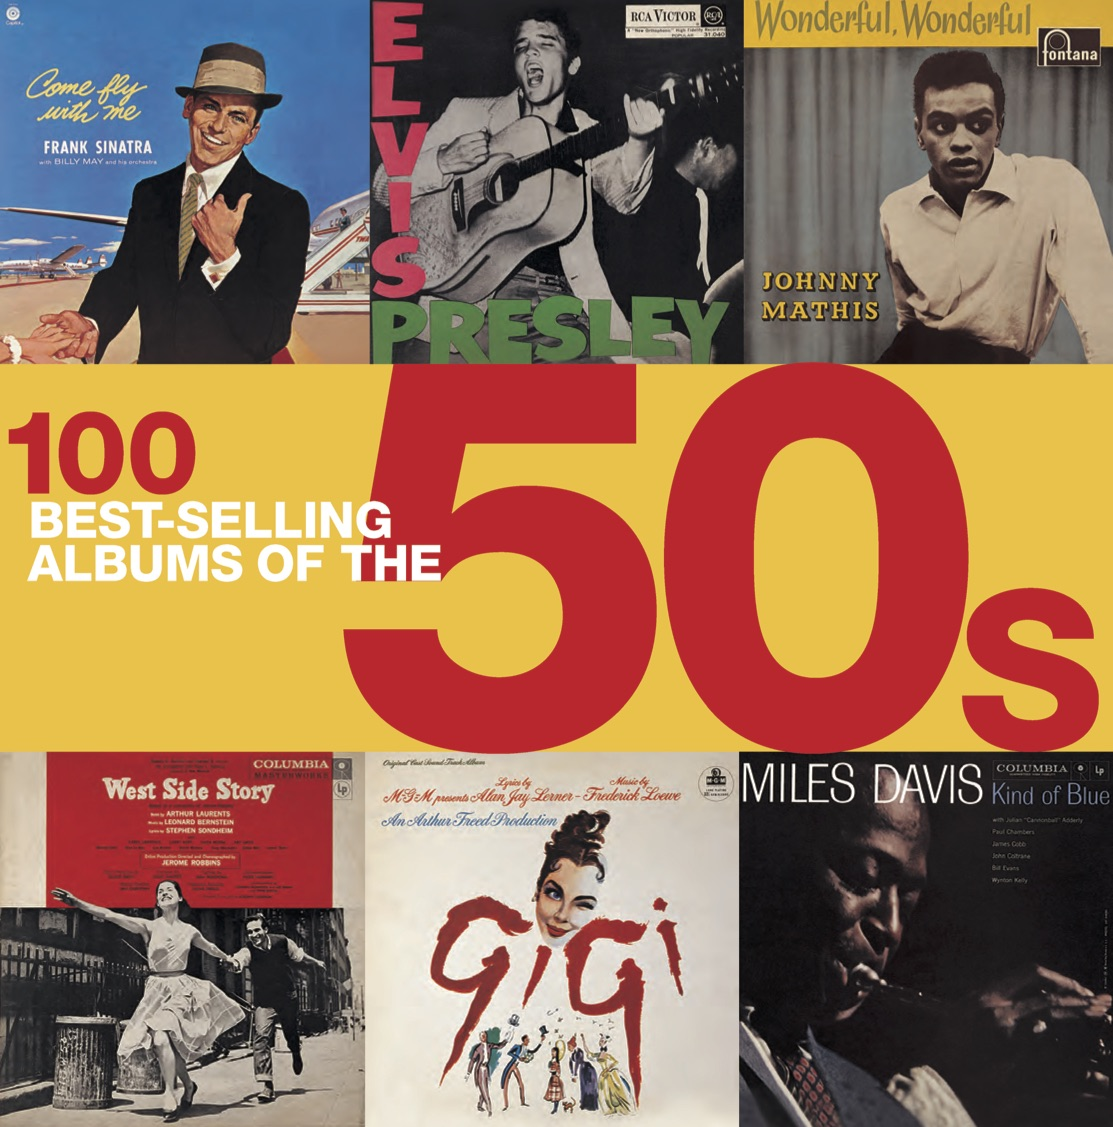 100 Best-Selling Albums of the 50s